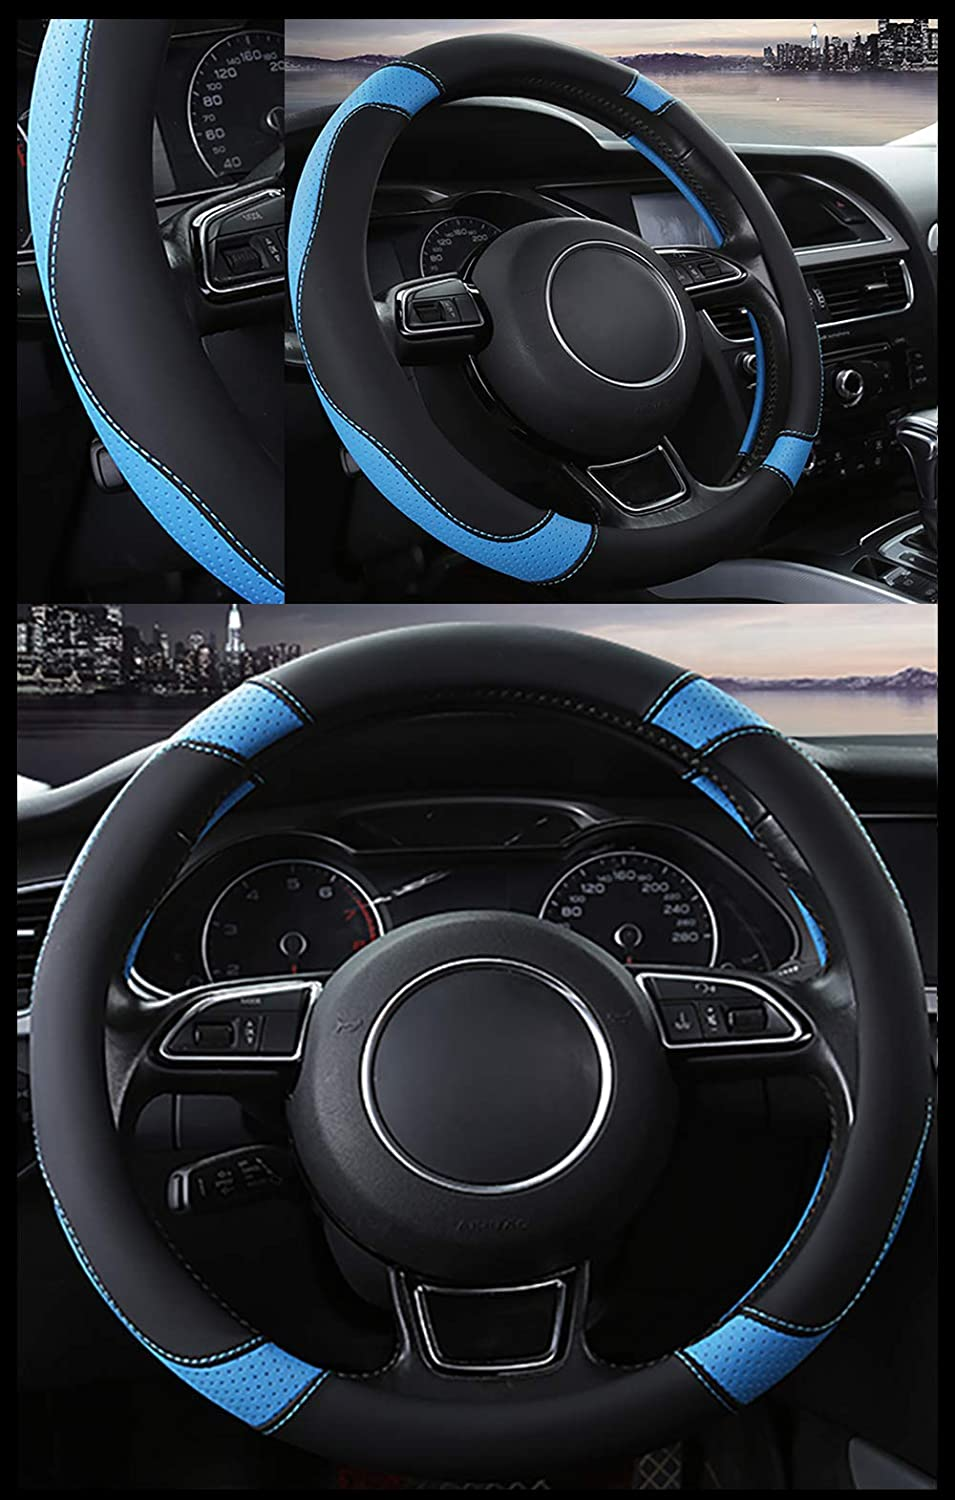 NEOBEAUTY Car Steering Wheel Cover Steering Wheel Protective Cover Microfiber Steering Wheel Cover Universal Size 37-38cm// 15 Inches Non-Slip Breathable and Durable Red Wine